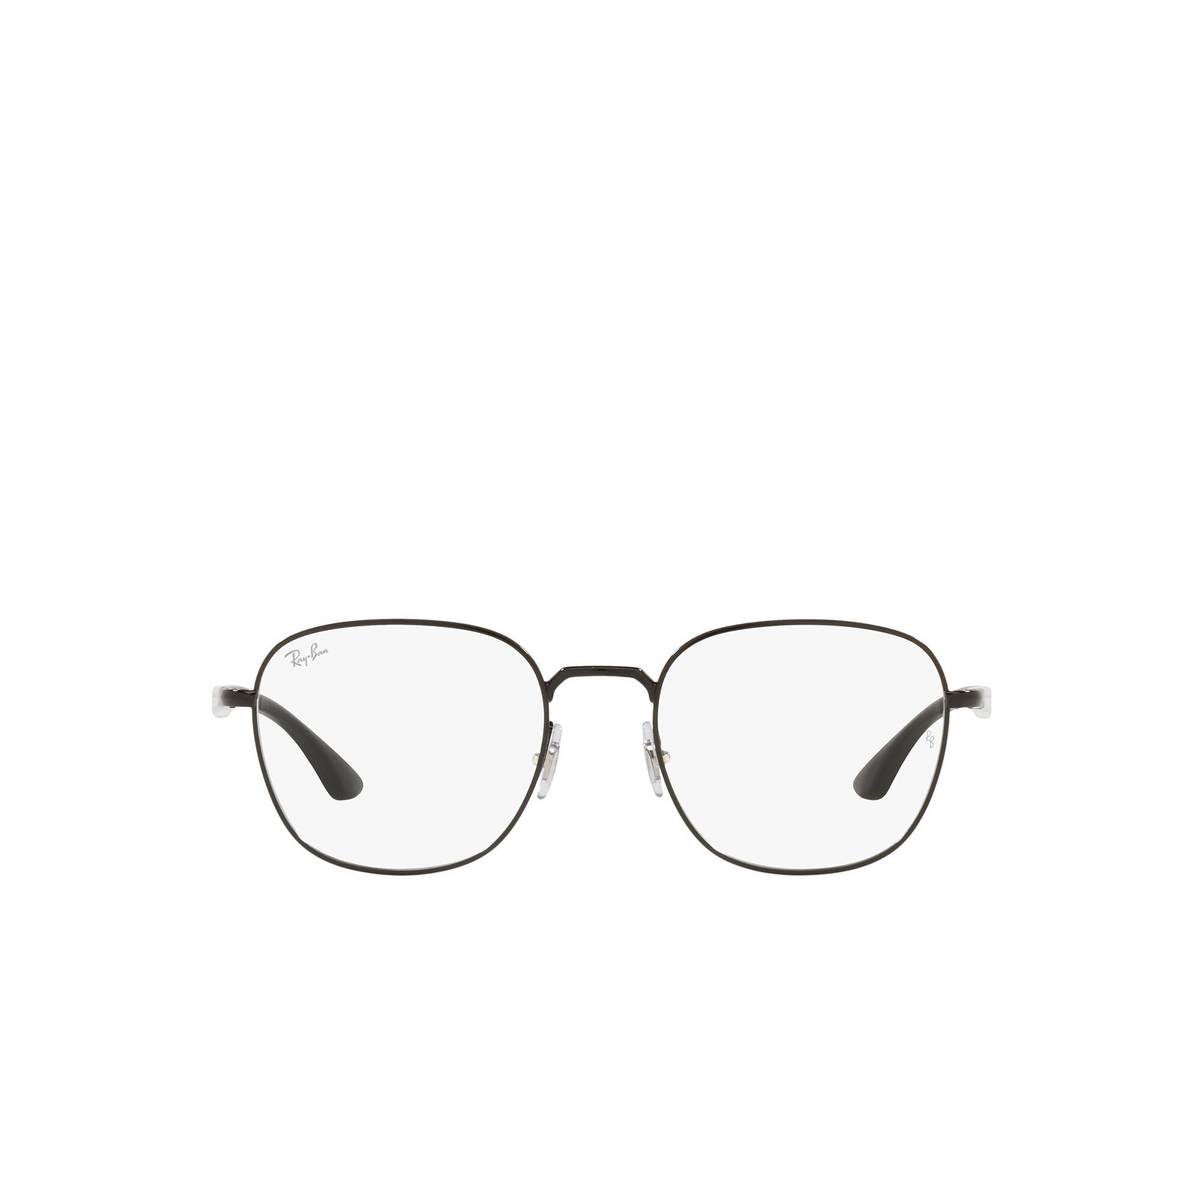 Ray-Ban® Square Eyeglasses: RX6477 color Black 2509 - front view.